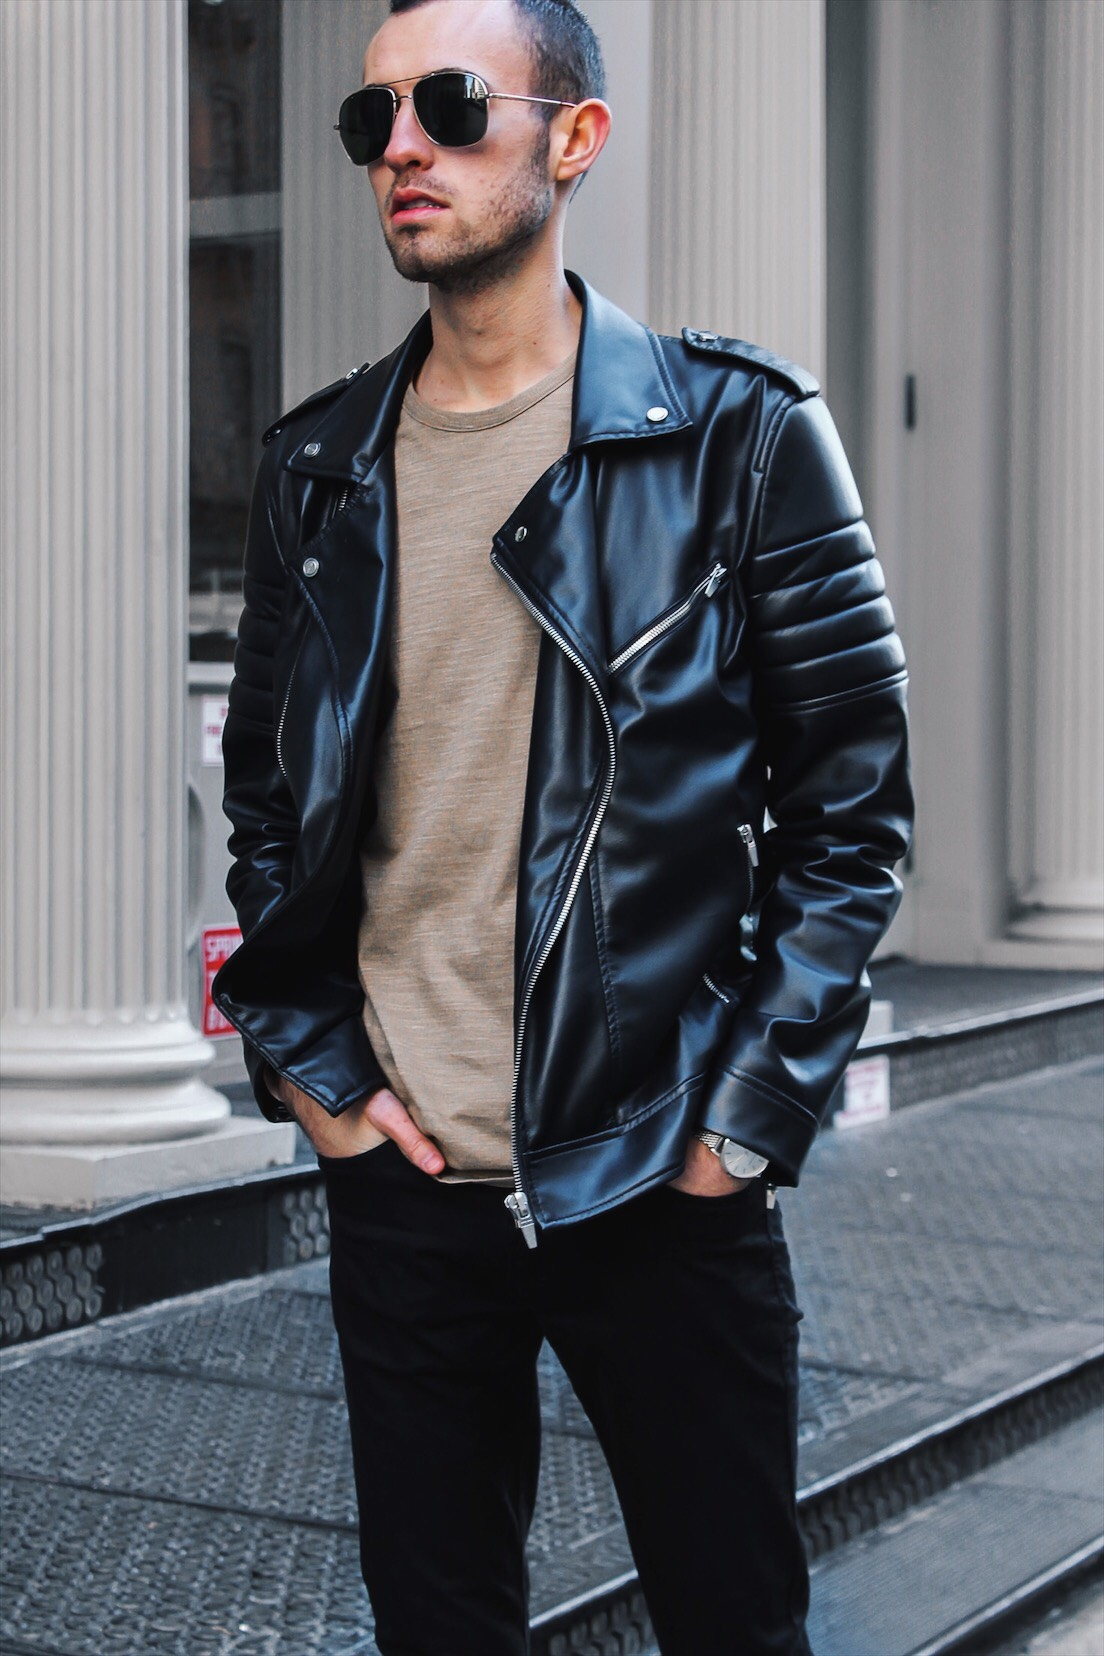 new york fashion week alex in leather jacket